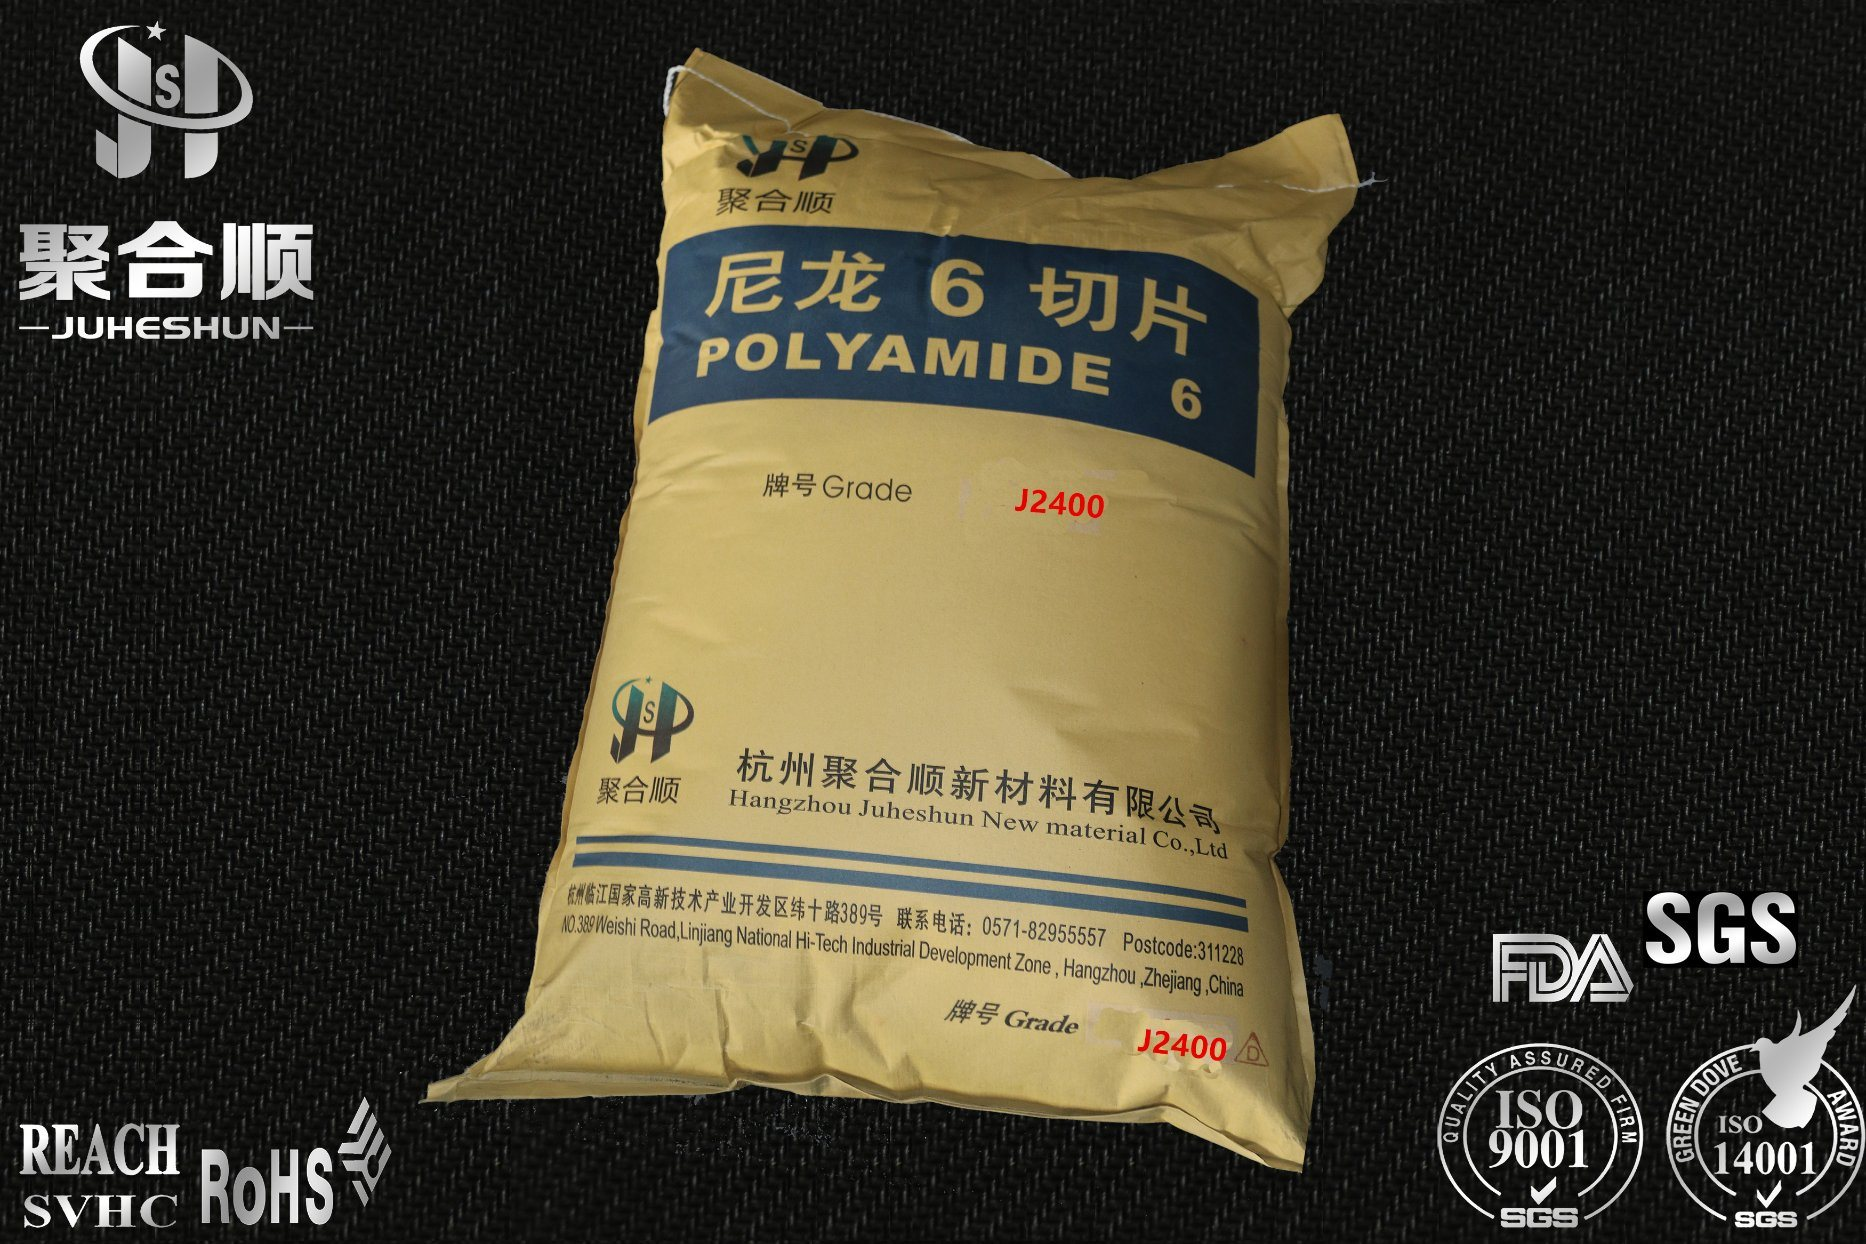 J2400/PA6 /Nylon-6 Chips/Polyamide 6 Granules/Pellets/Engineering Grade Nylon6 Slice